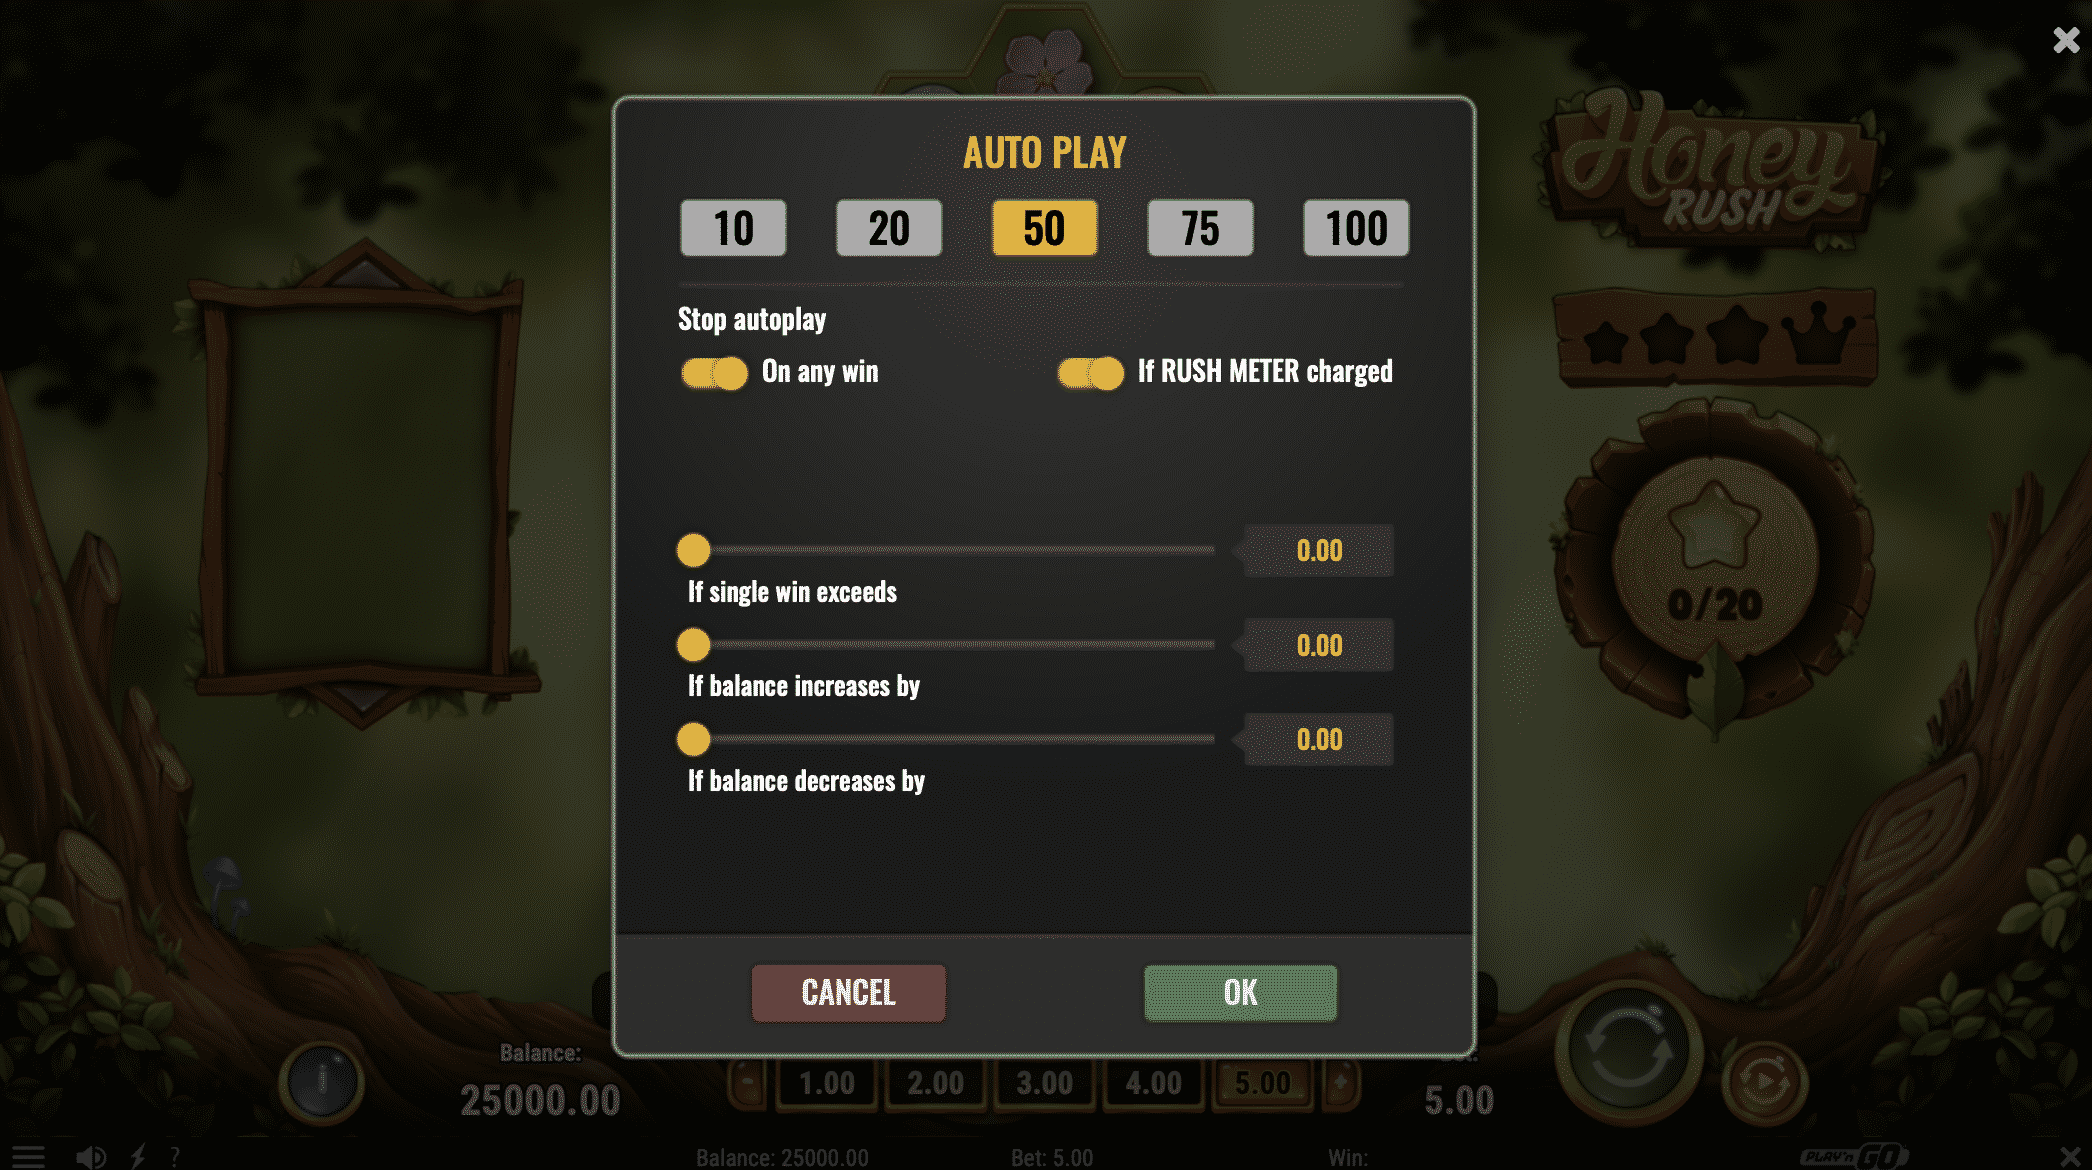 Auto Play Allows Players to Set Win and Loss Limits